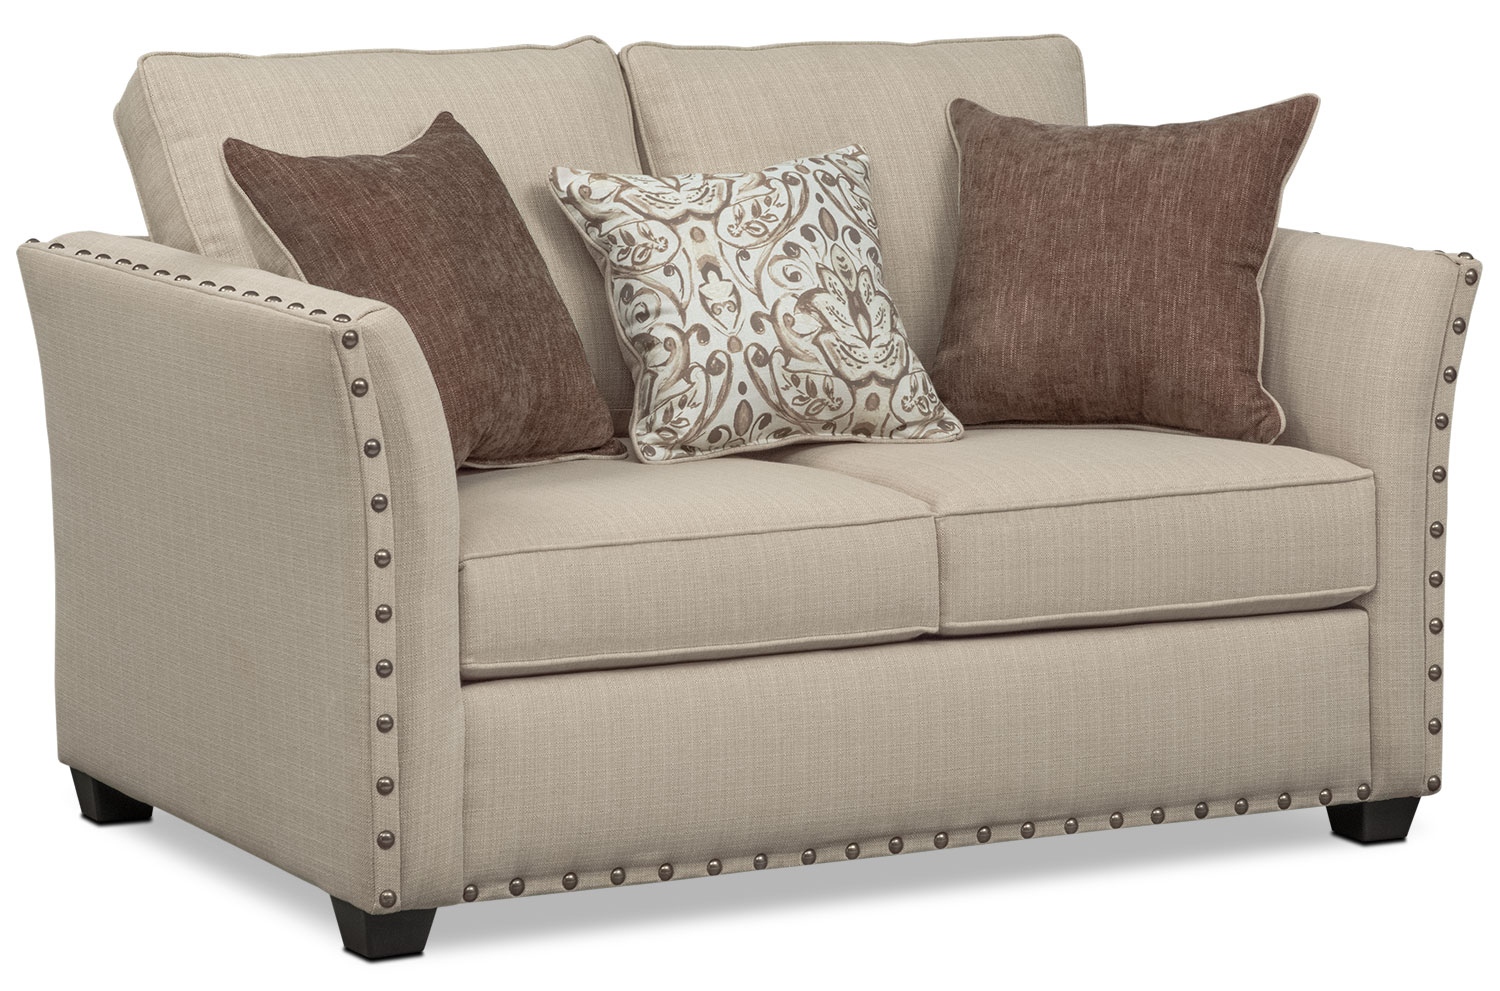 Mckenna Queen Memory Foam Sleeper Sofa Loveseat And Accent Chair  ~ Sleeper Sofa Memory Foam